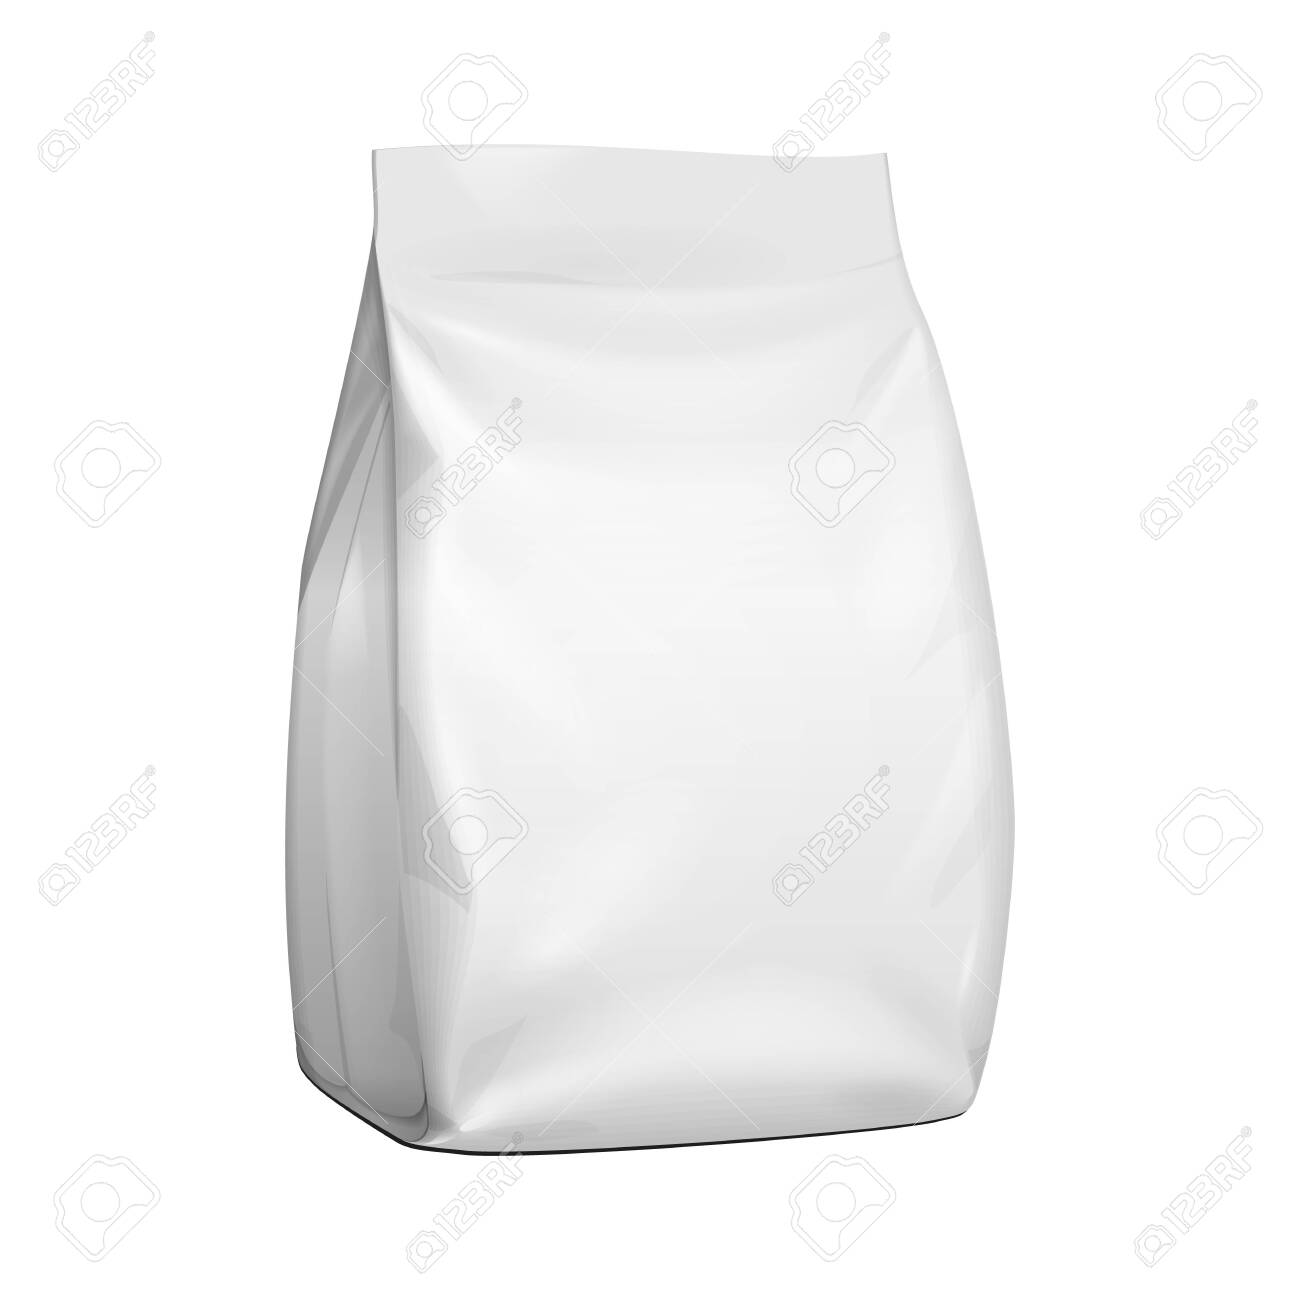 Blank Stand Up Pouch Snack Sachet Bag. Mock Up, Template. Illustration Isolated On White Background. Ready For Your Design. Product Packaging. Vector EPS10 - 124097548